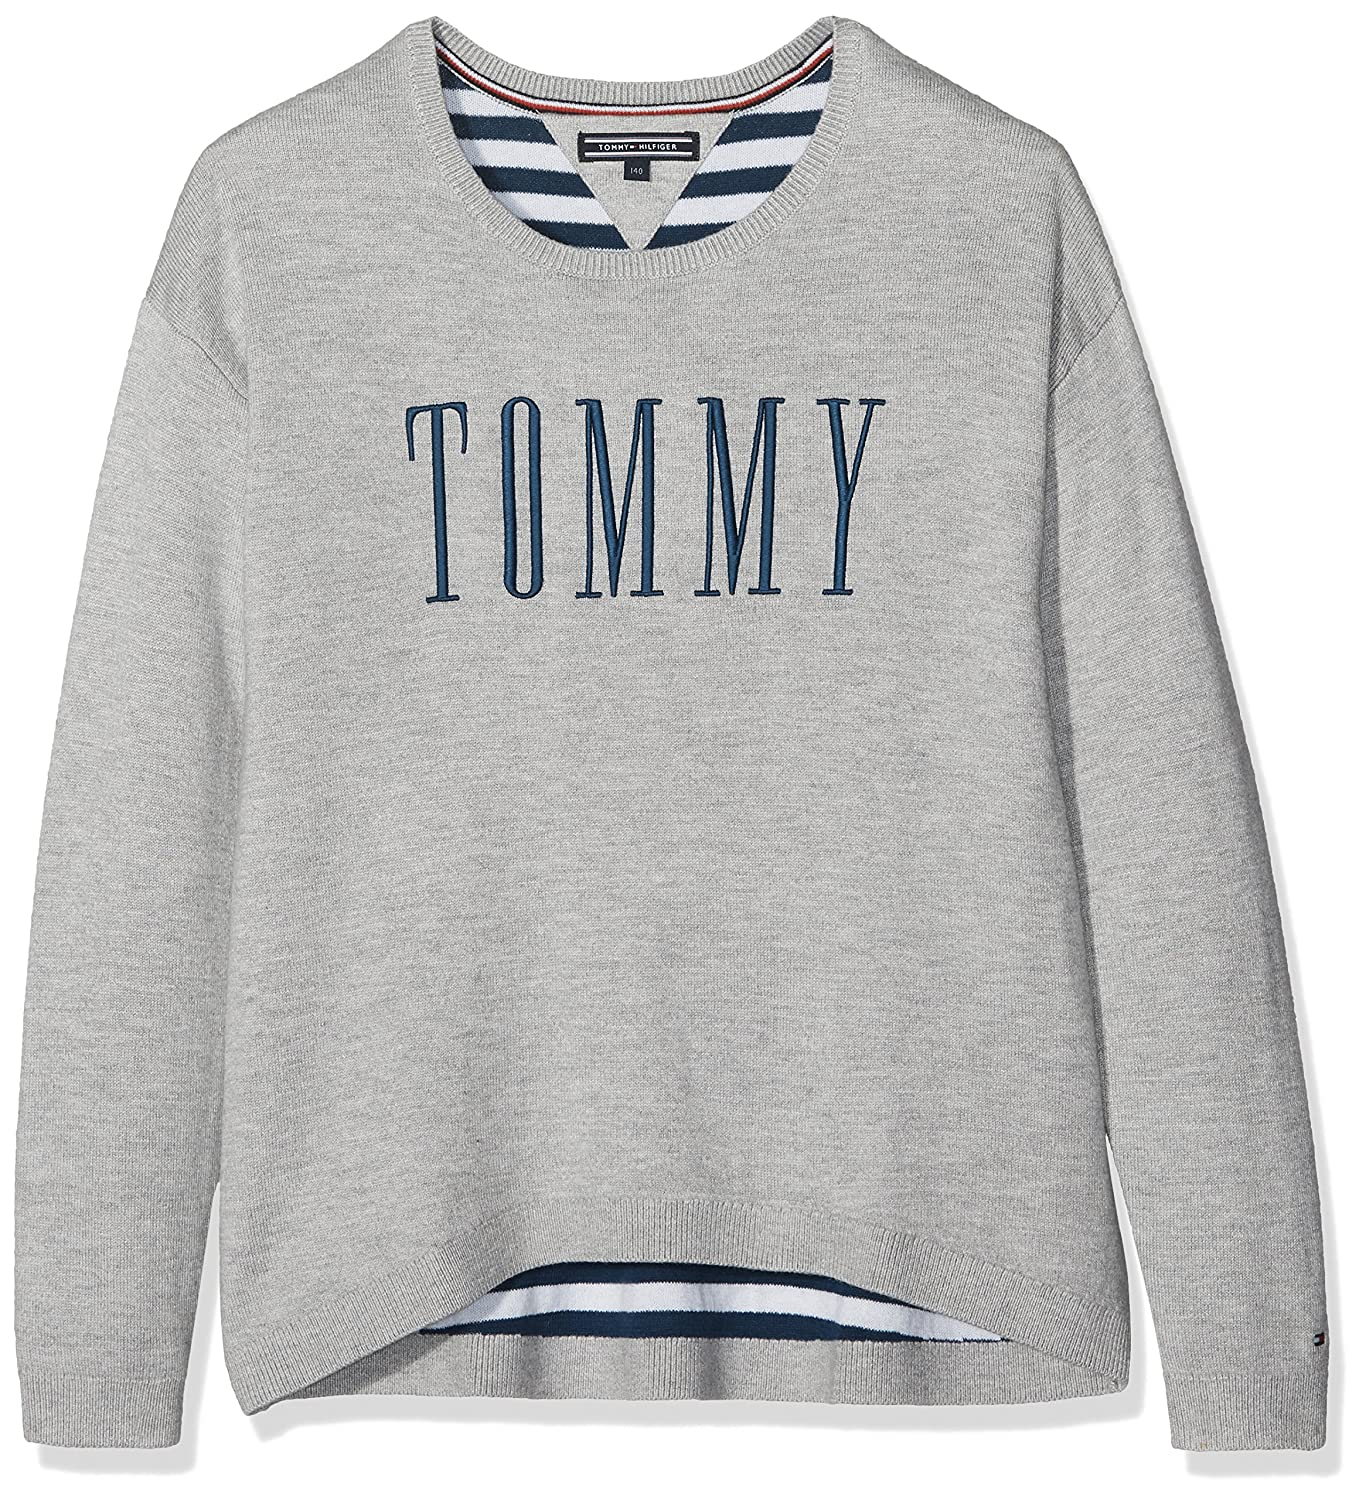 Tommy Hilfiger AME Graphic Sweater, Felpa Bambina KG0KG02941